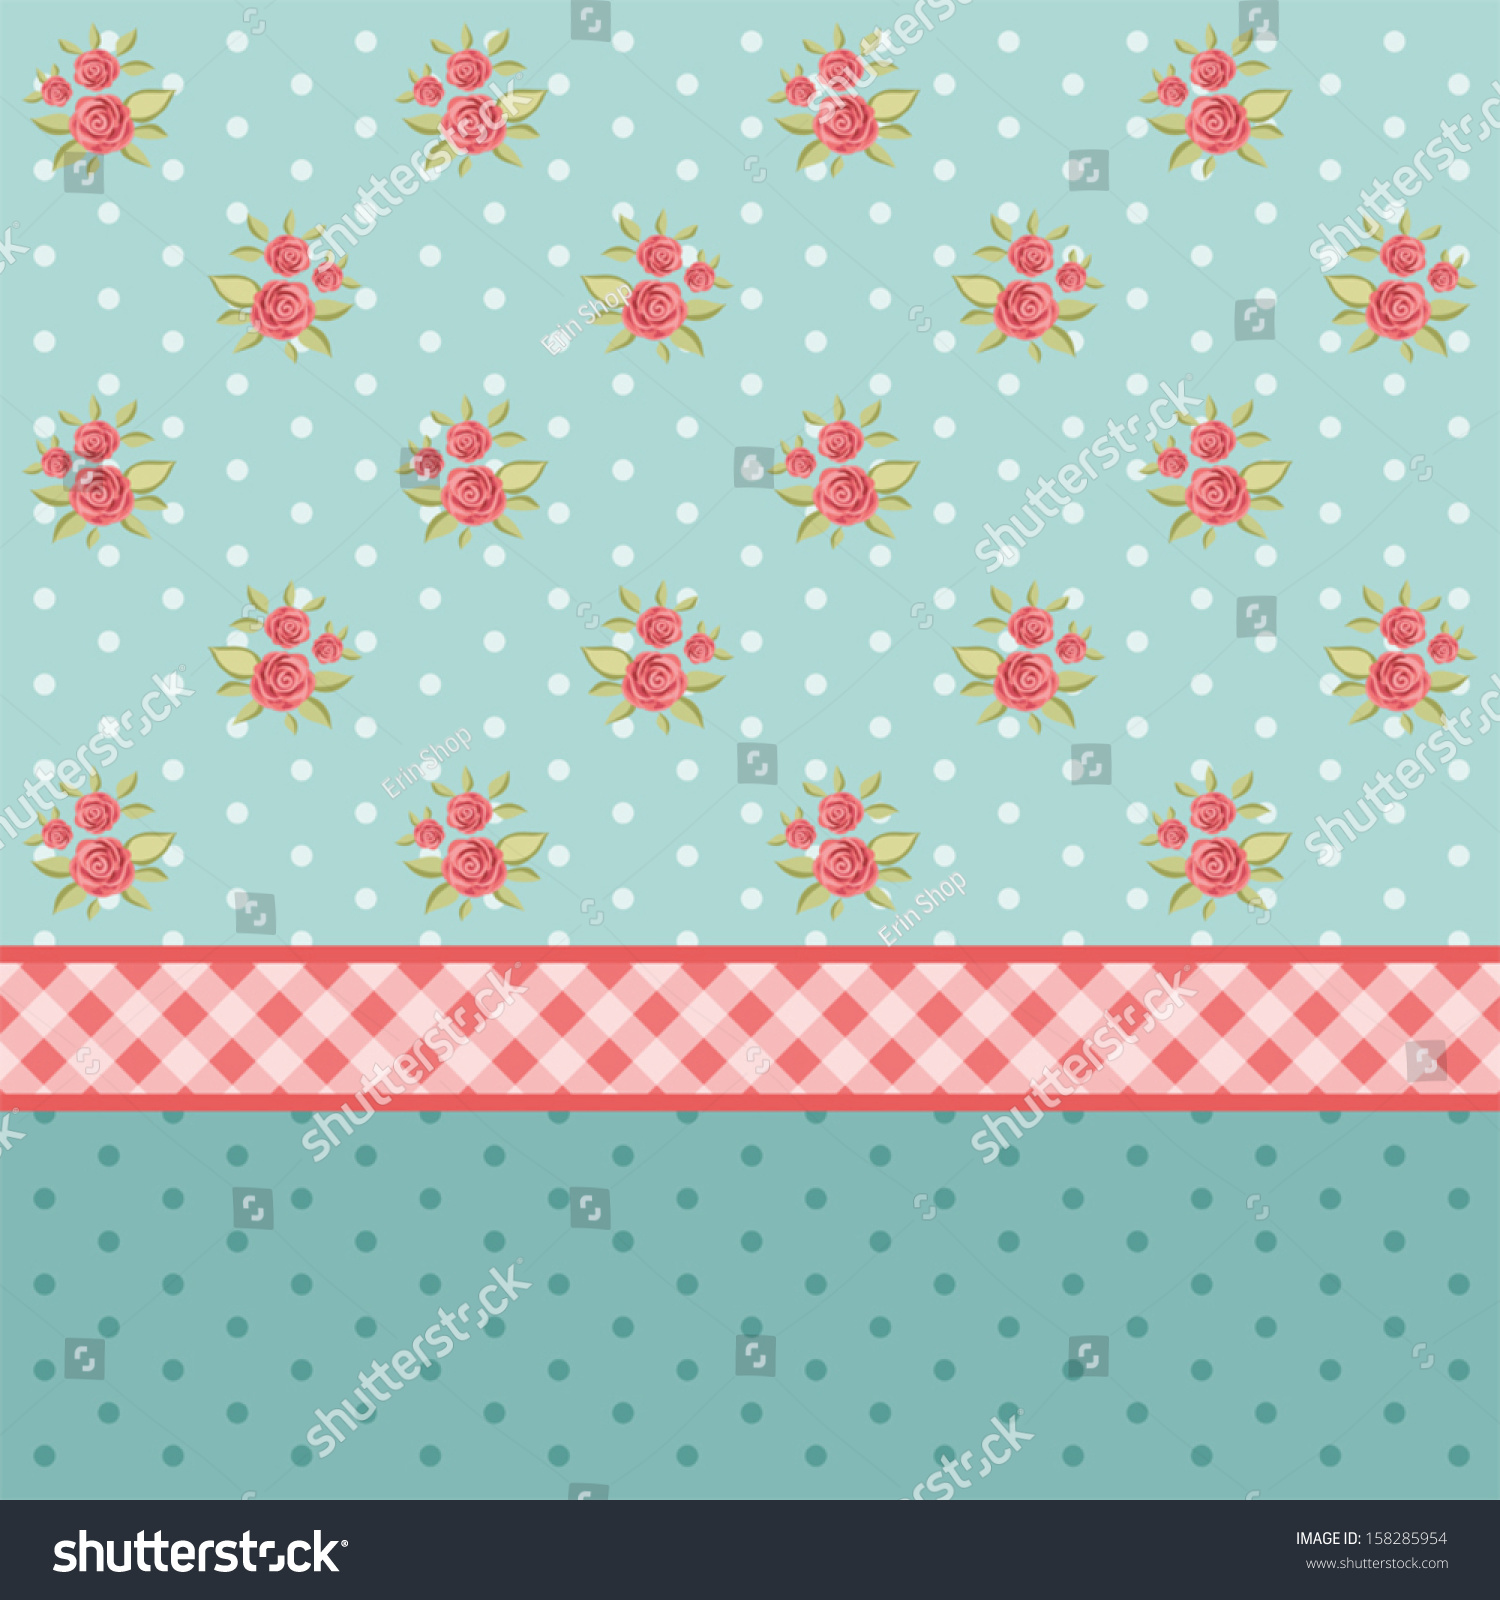 Vintage Floral Wallpaper Roses Shabby Chic Stock Image Download Now